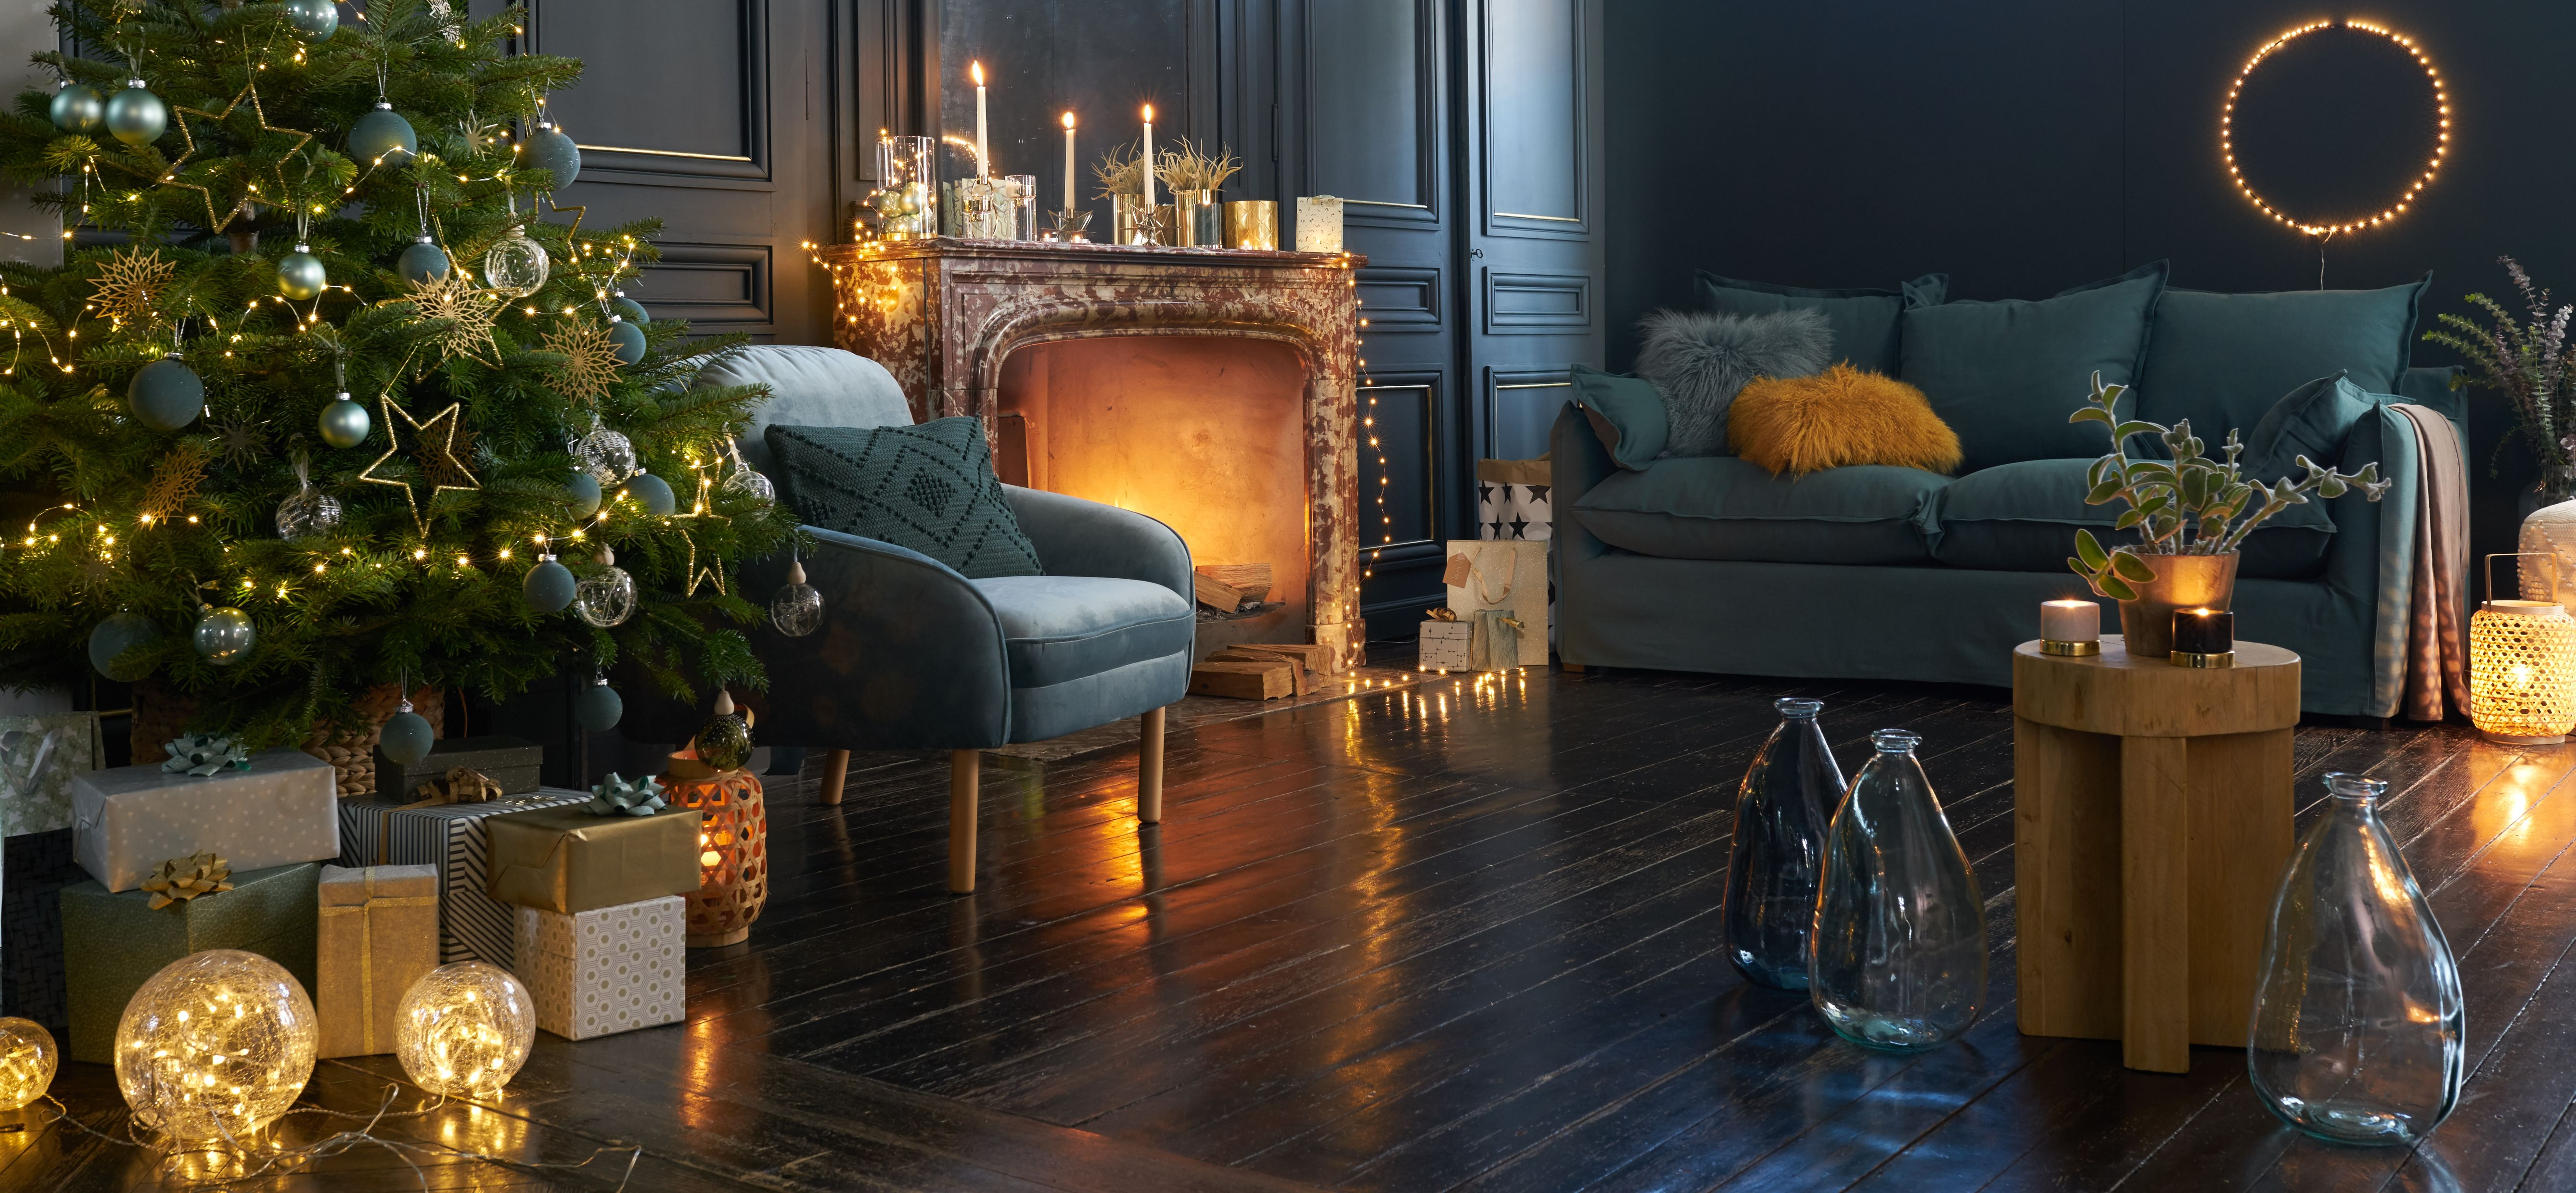 Pin by La Redoute UK on Decorating For Christmas | Festive ...